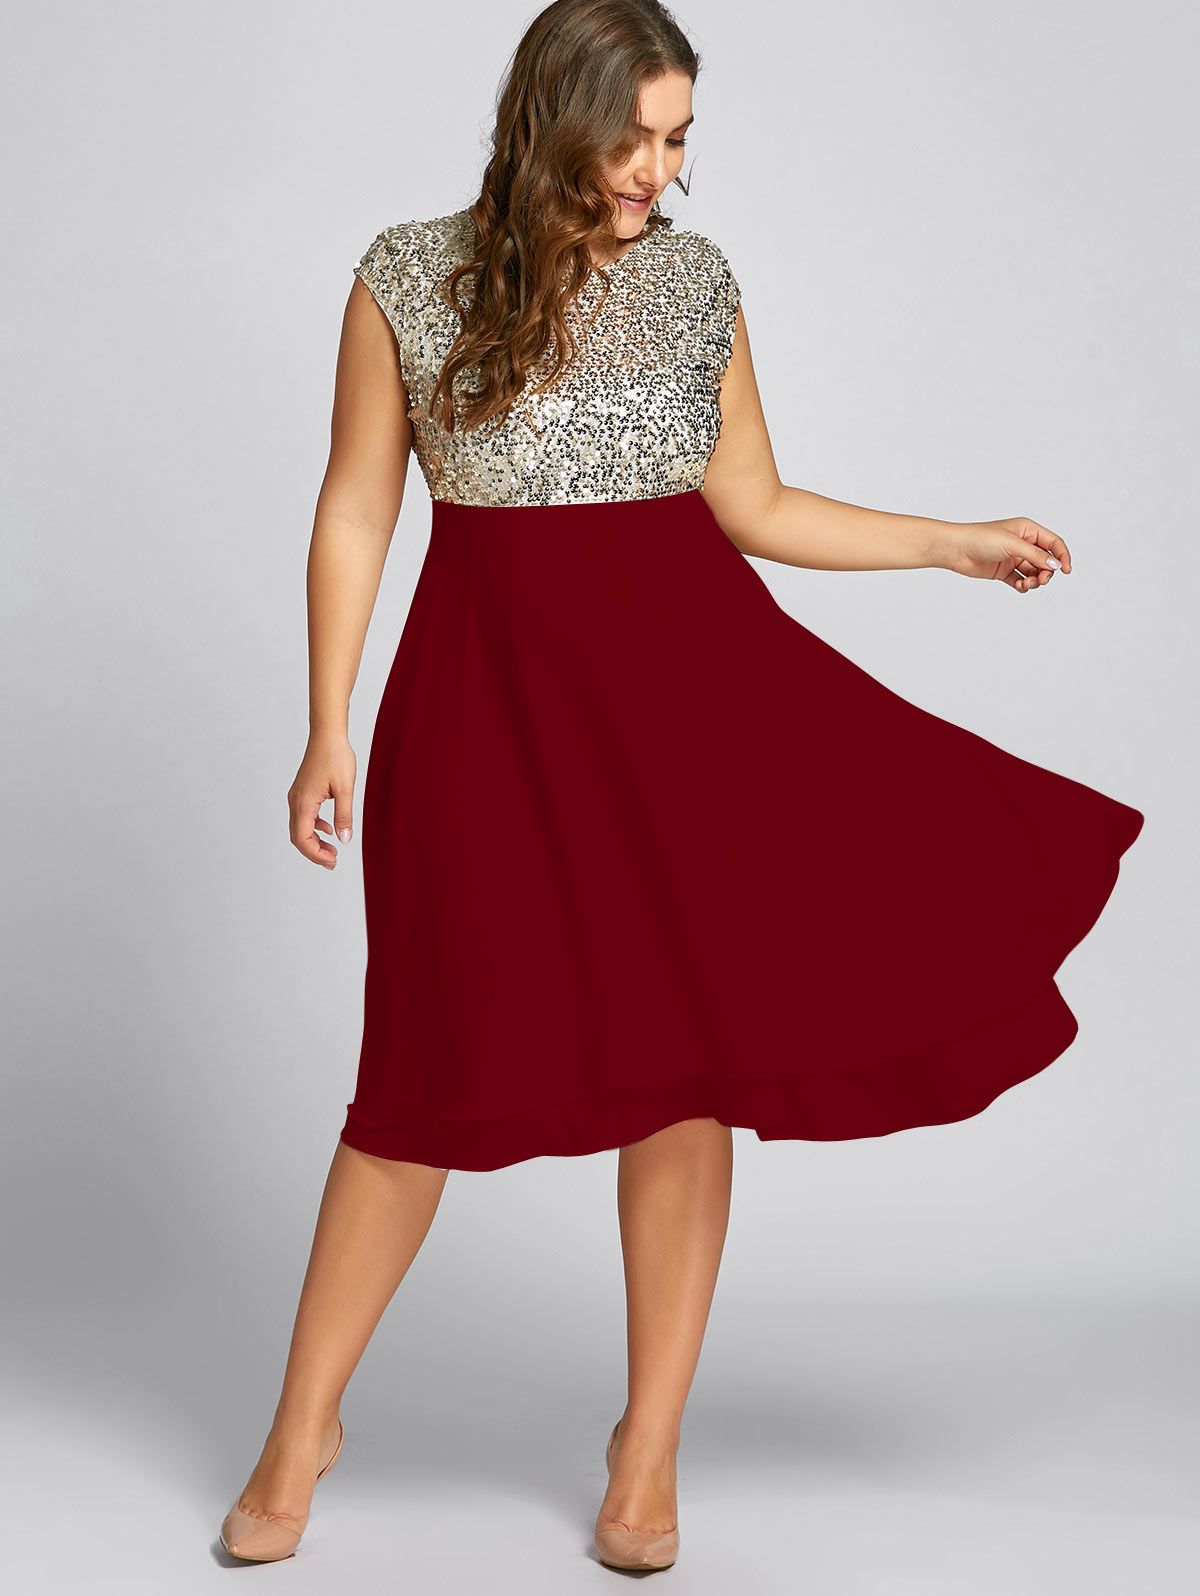 US $17.77 48% OFF|Wipalo Women Flounce Plus Size 5XL Sequin Sparkly Dress  Robe Female Short Sleeves Party Ball Gown Knee Length Vestidos-in Dresses  ...